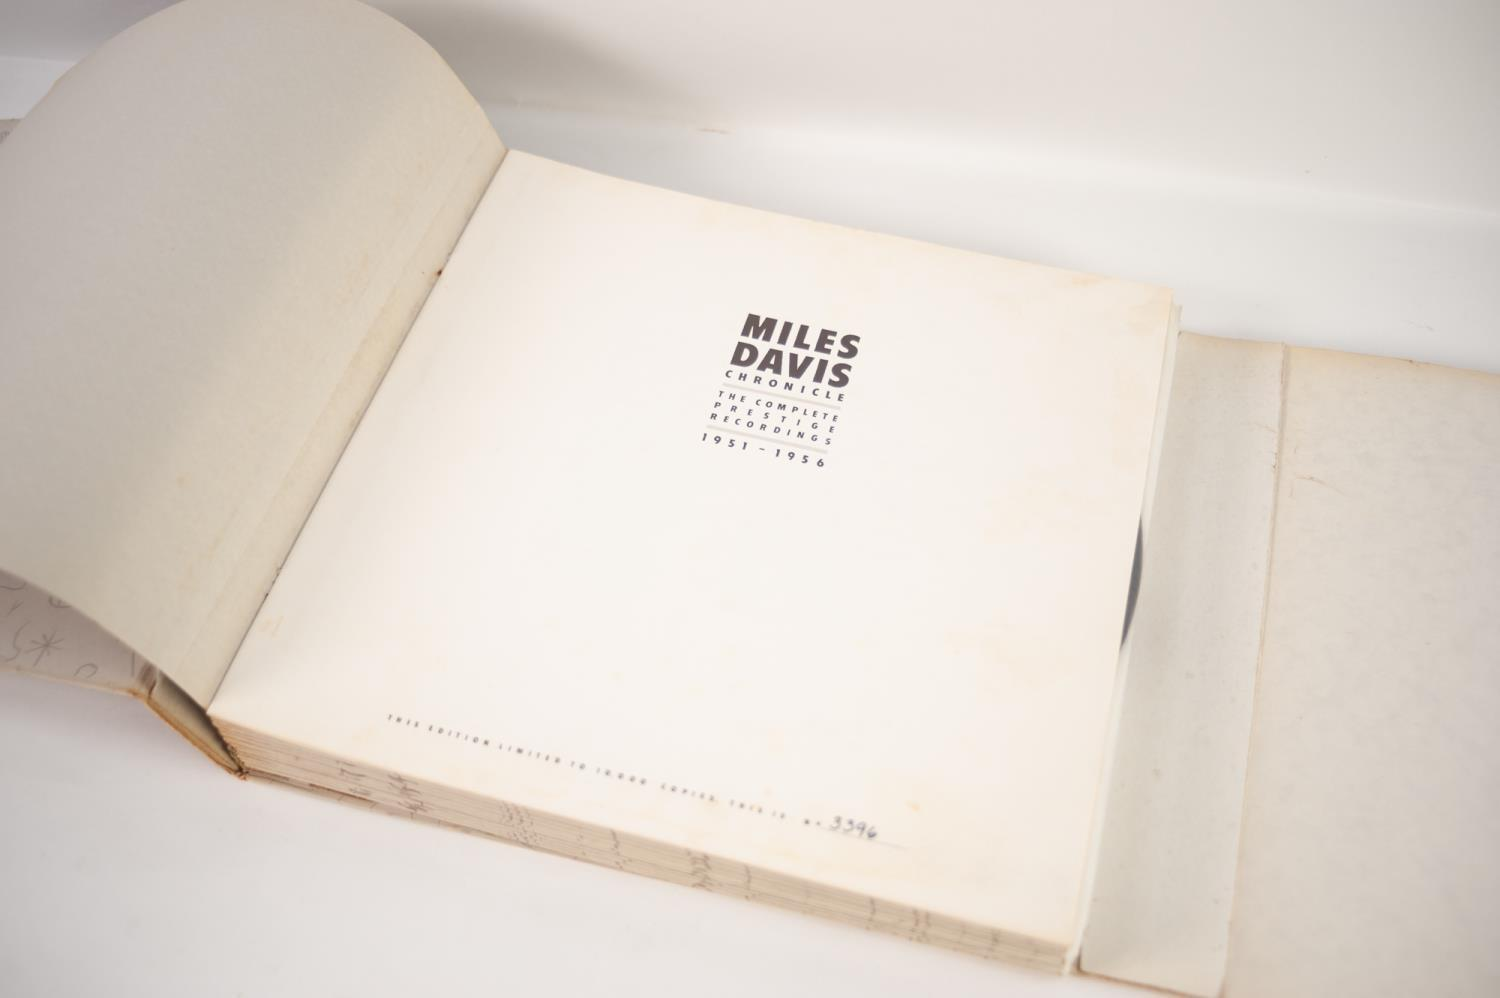 JAZZ, VINYL RECORDS- D IS FOR MILES DAVIS- CHRONICLE THE COMPLETE PRESTIGE RECORDINGS 1951-1956, - Image 2 of 6